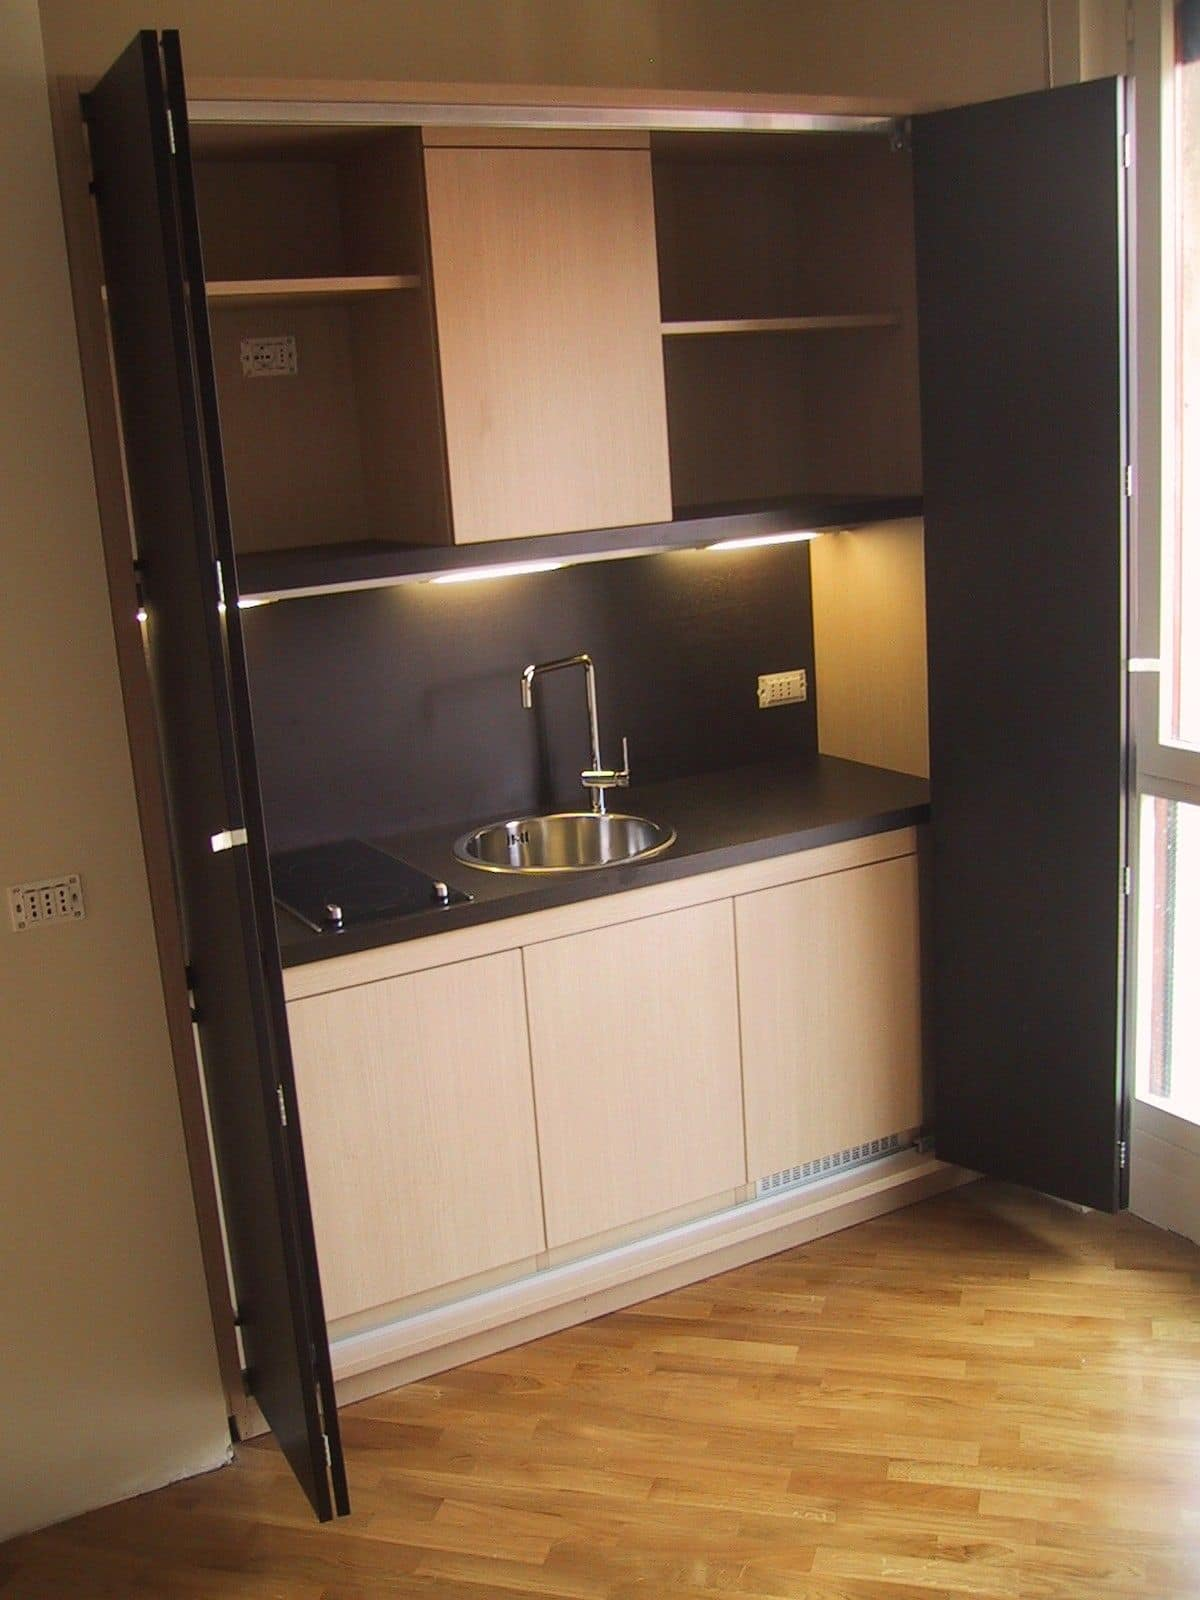 LINEA OFFICE, Kitchenette for small rooms, functional, customized